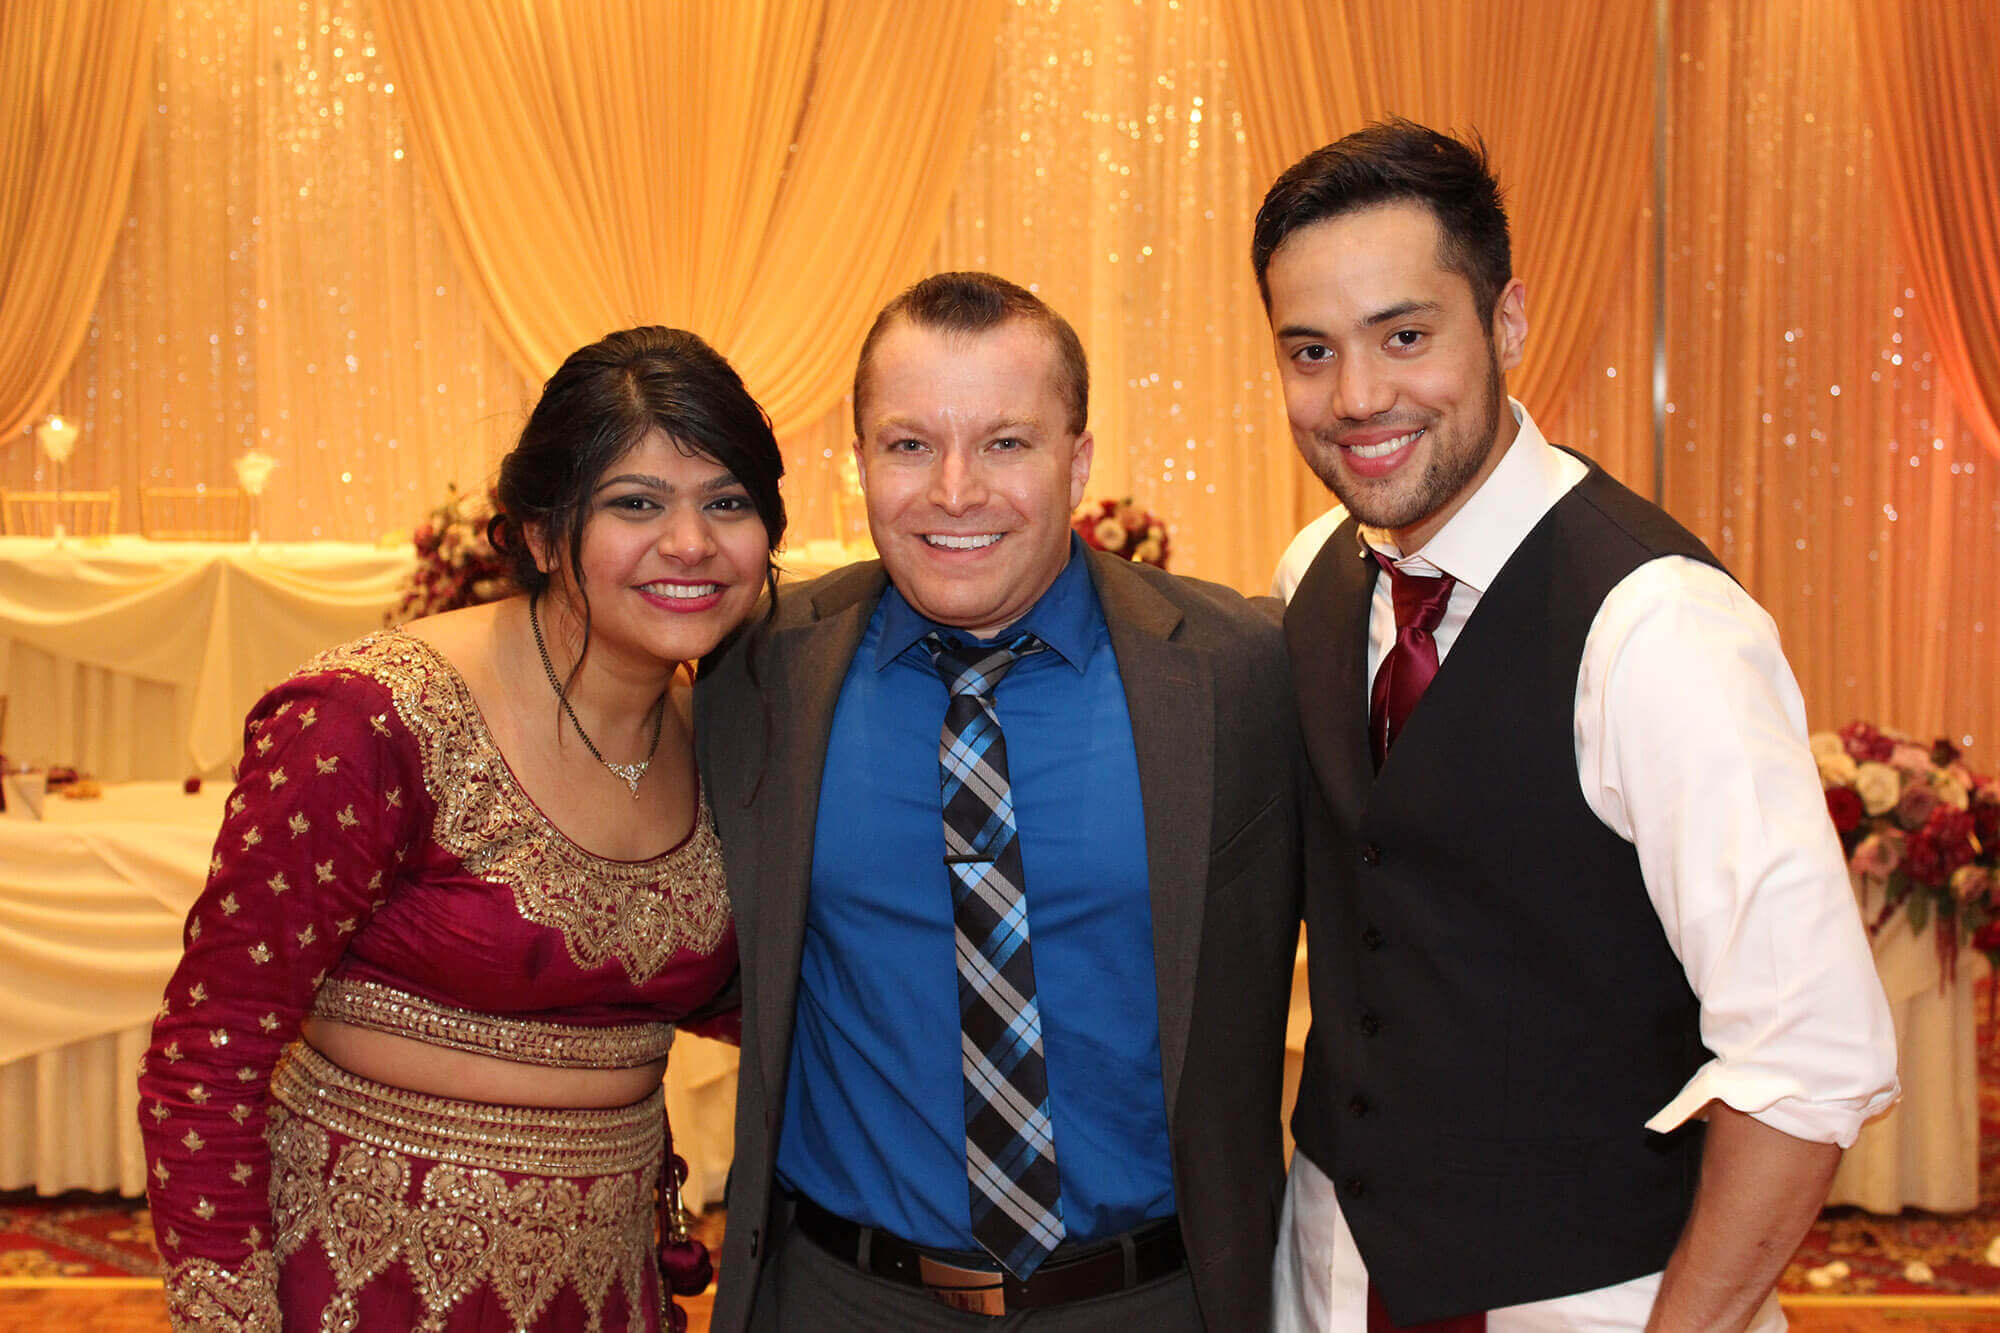 DJ Paul with Indian Wedding Couple at Bolingbrook Golf Club